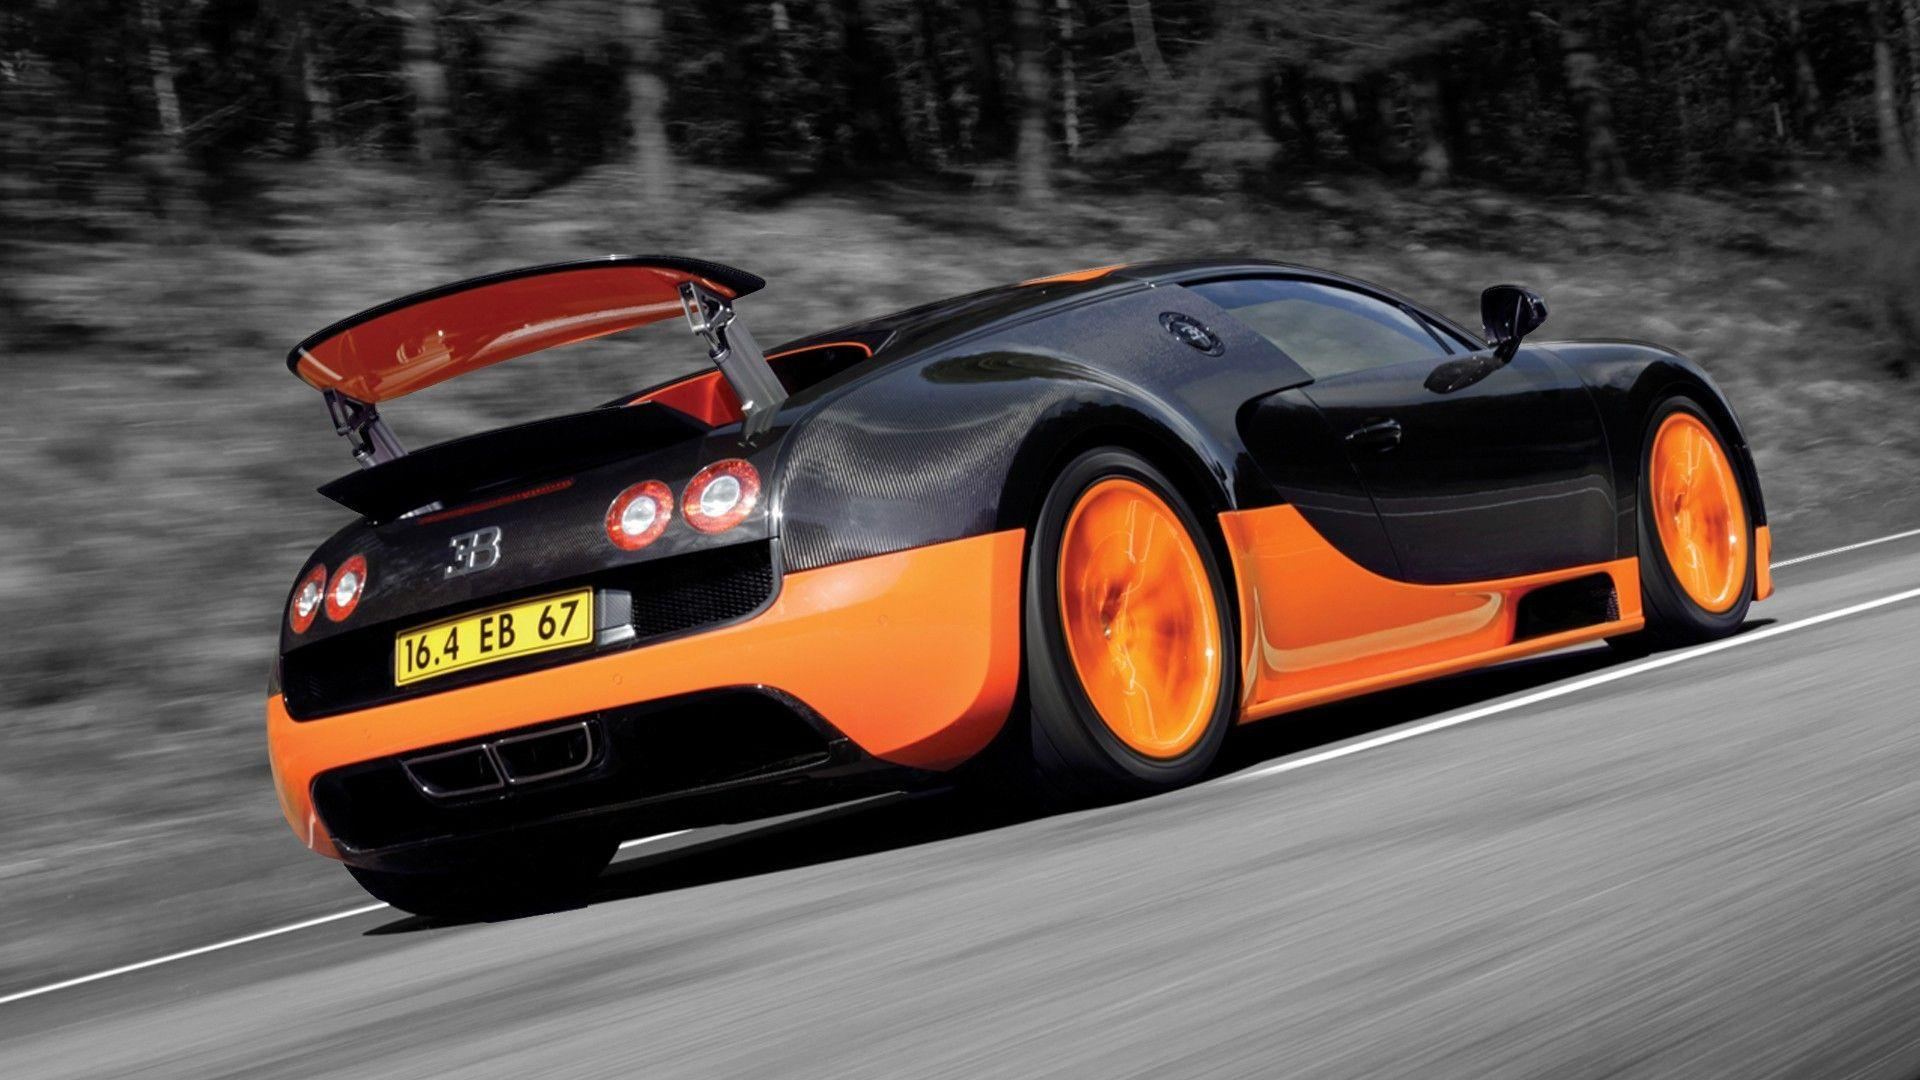 Bugatti Super Sport Wallpaper High Resolution Desktop Wallpaper